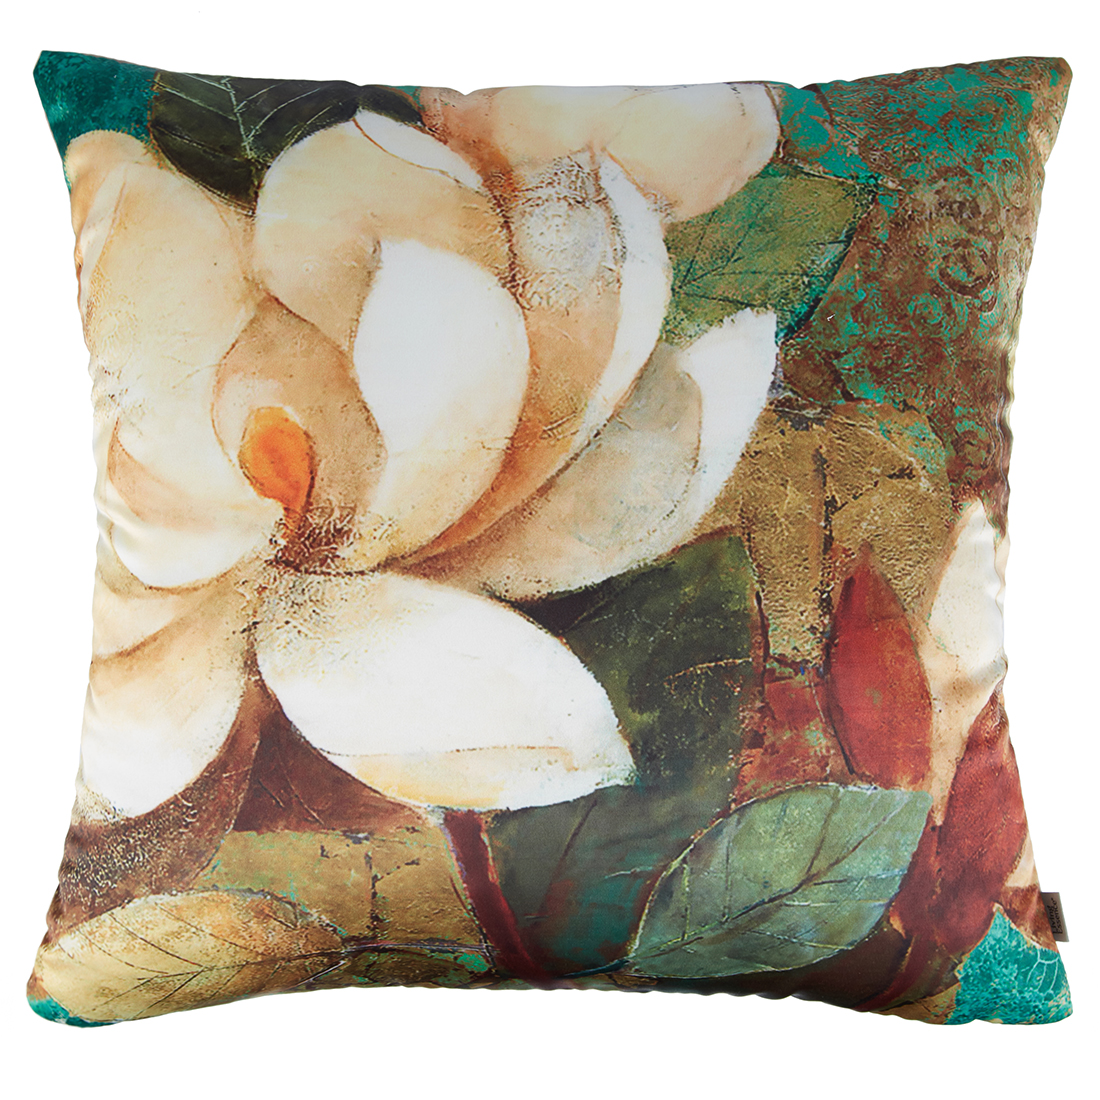 Digital Cushion Cover Neutral Lotus Cushion Covers in Poly Satin Colour by Living Essence